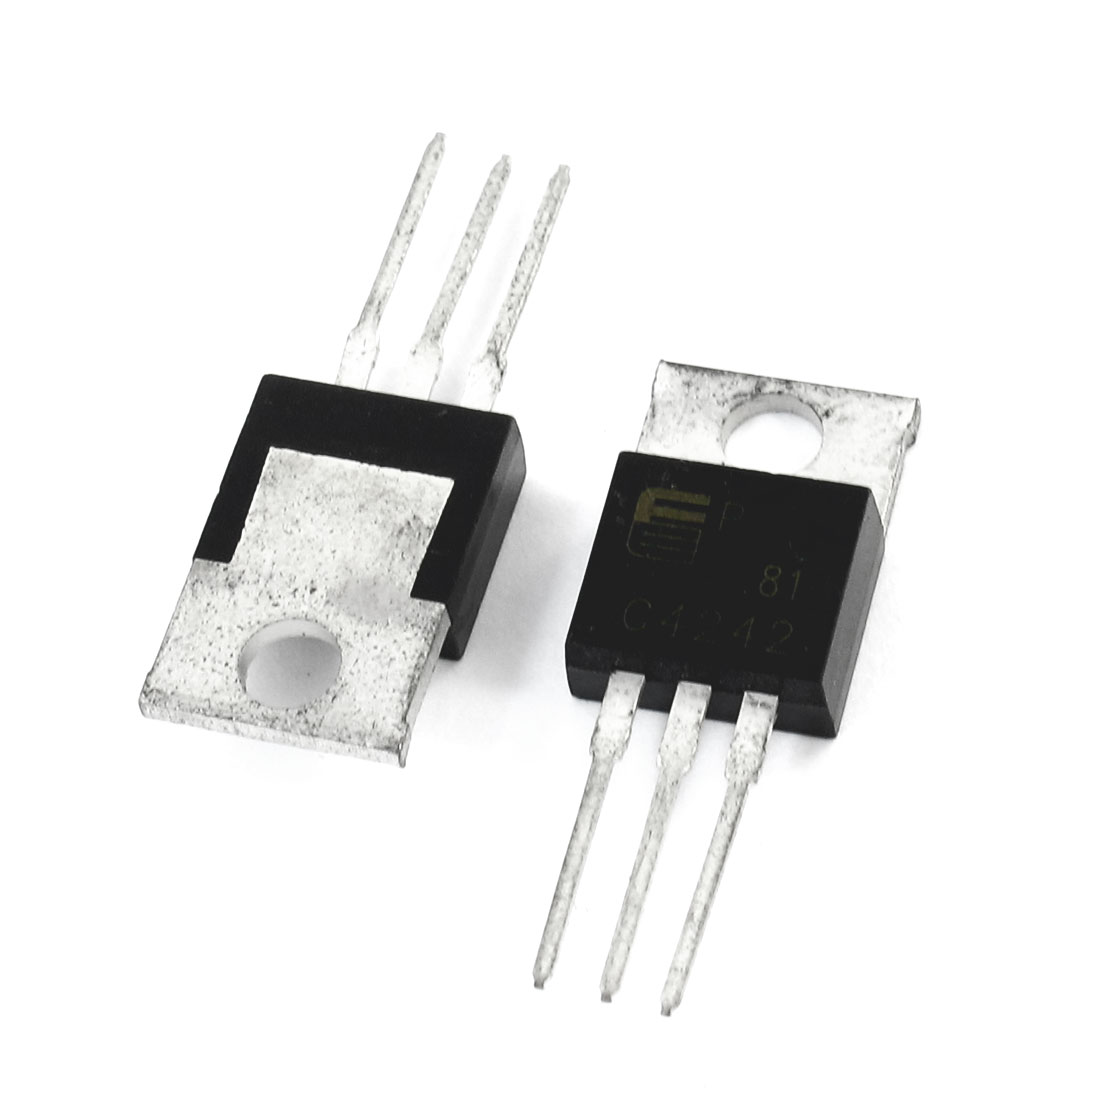 2 Pcs 2SC4242 400V 7Amp 40W High Switching Speed Silicon Transistor